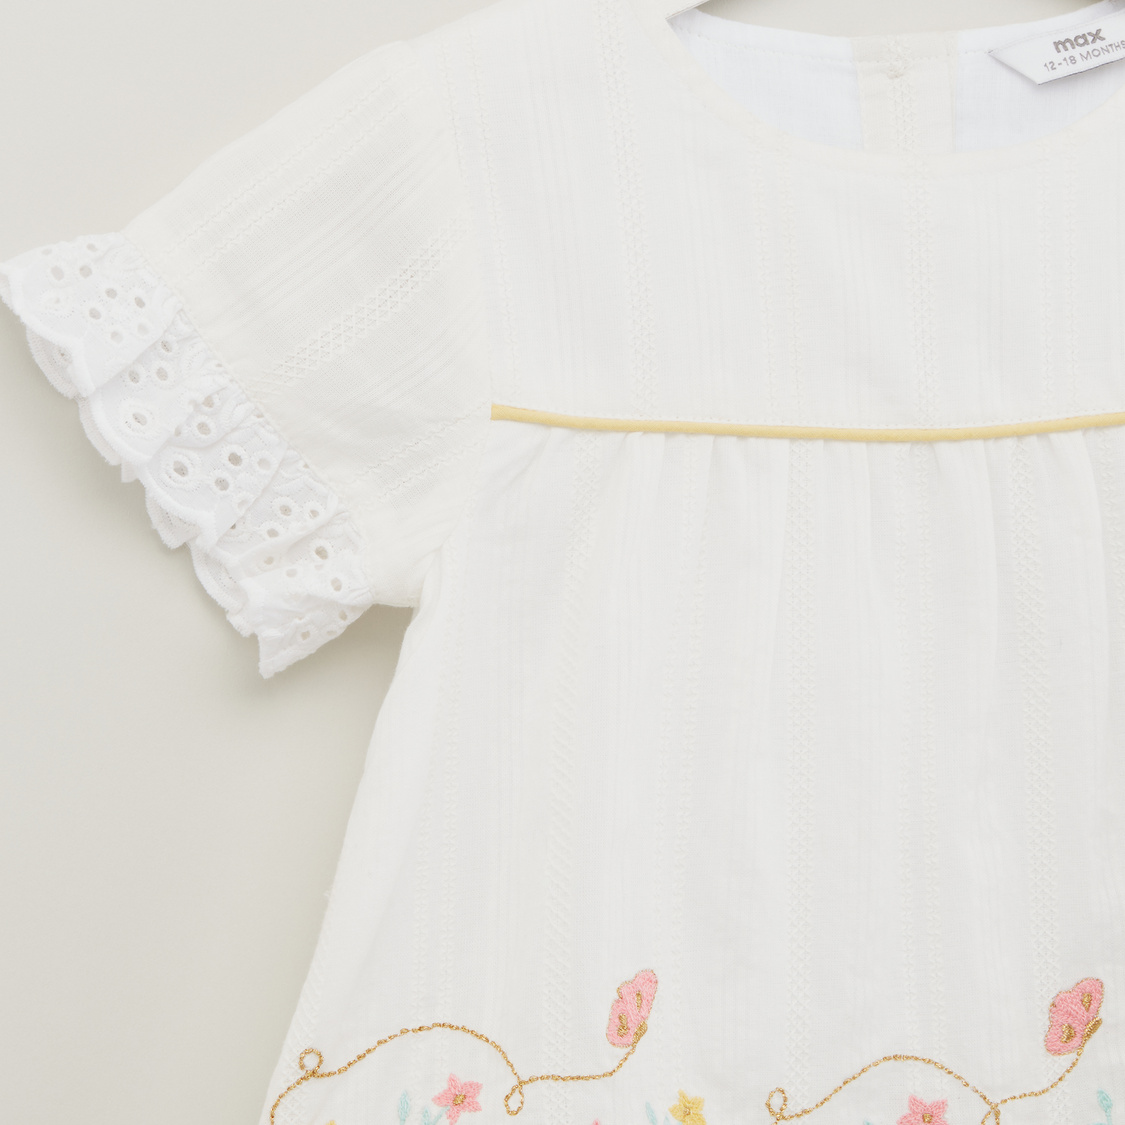 Round Neck Top with Short Sleeves and Floral Embroidery